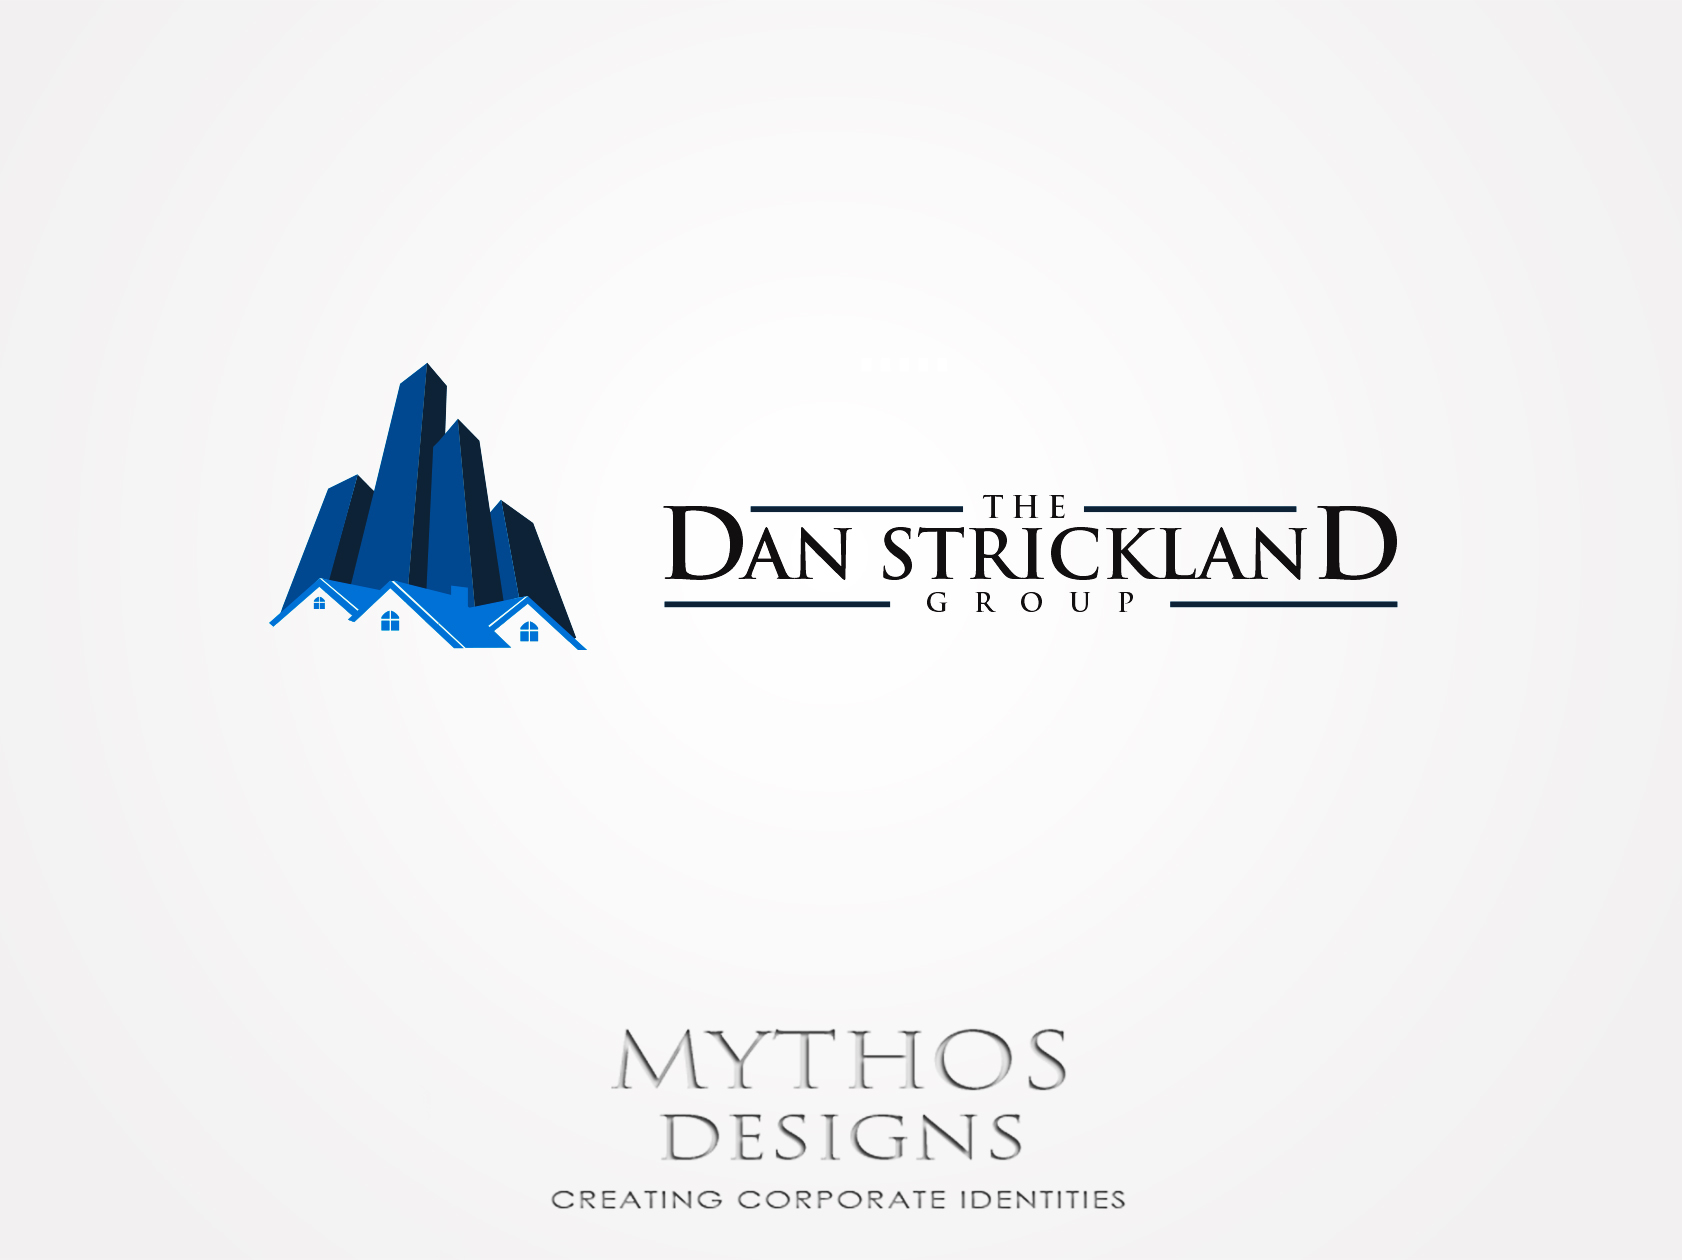 Logo Design by Mythos Designs - Entry No. 318 in the Logo Design Contest Creative Logo Design for The Dan Strickland Group.